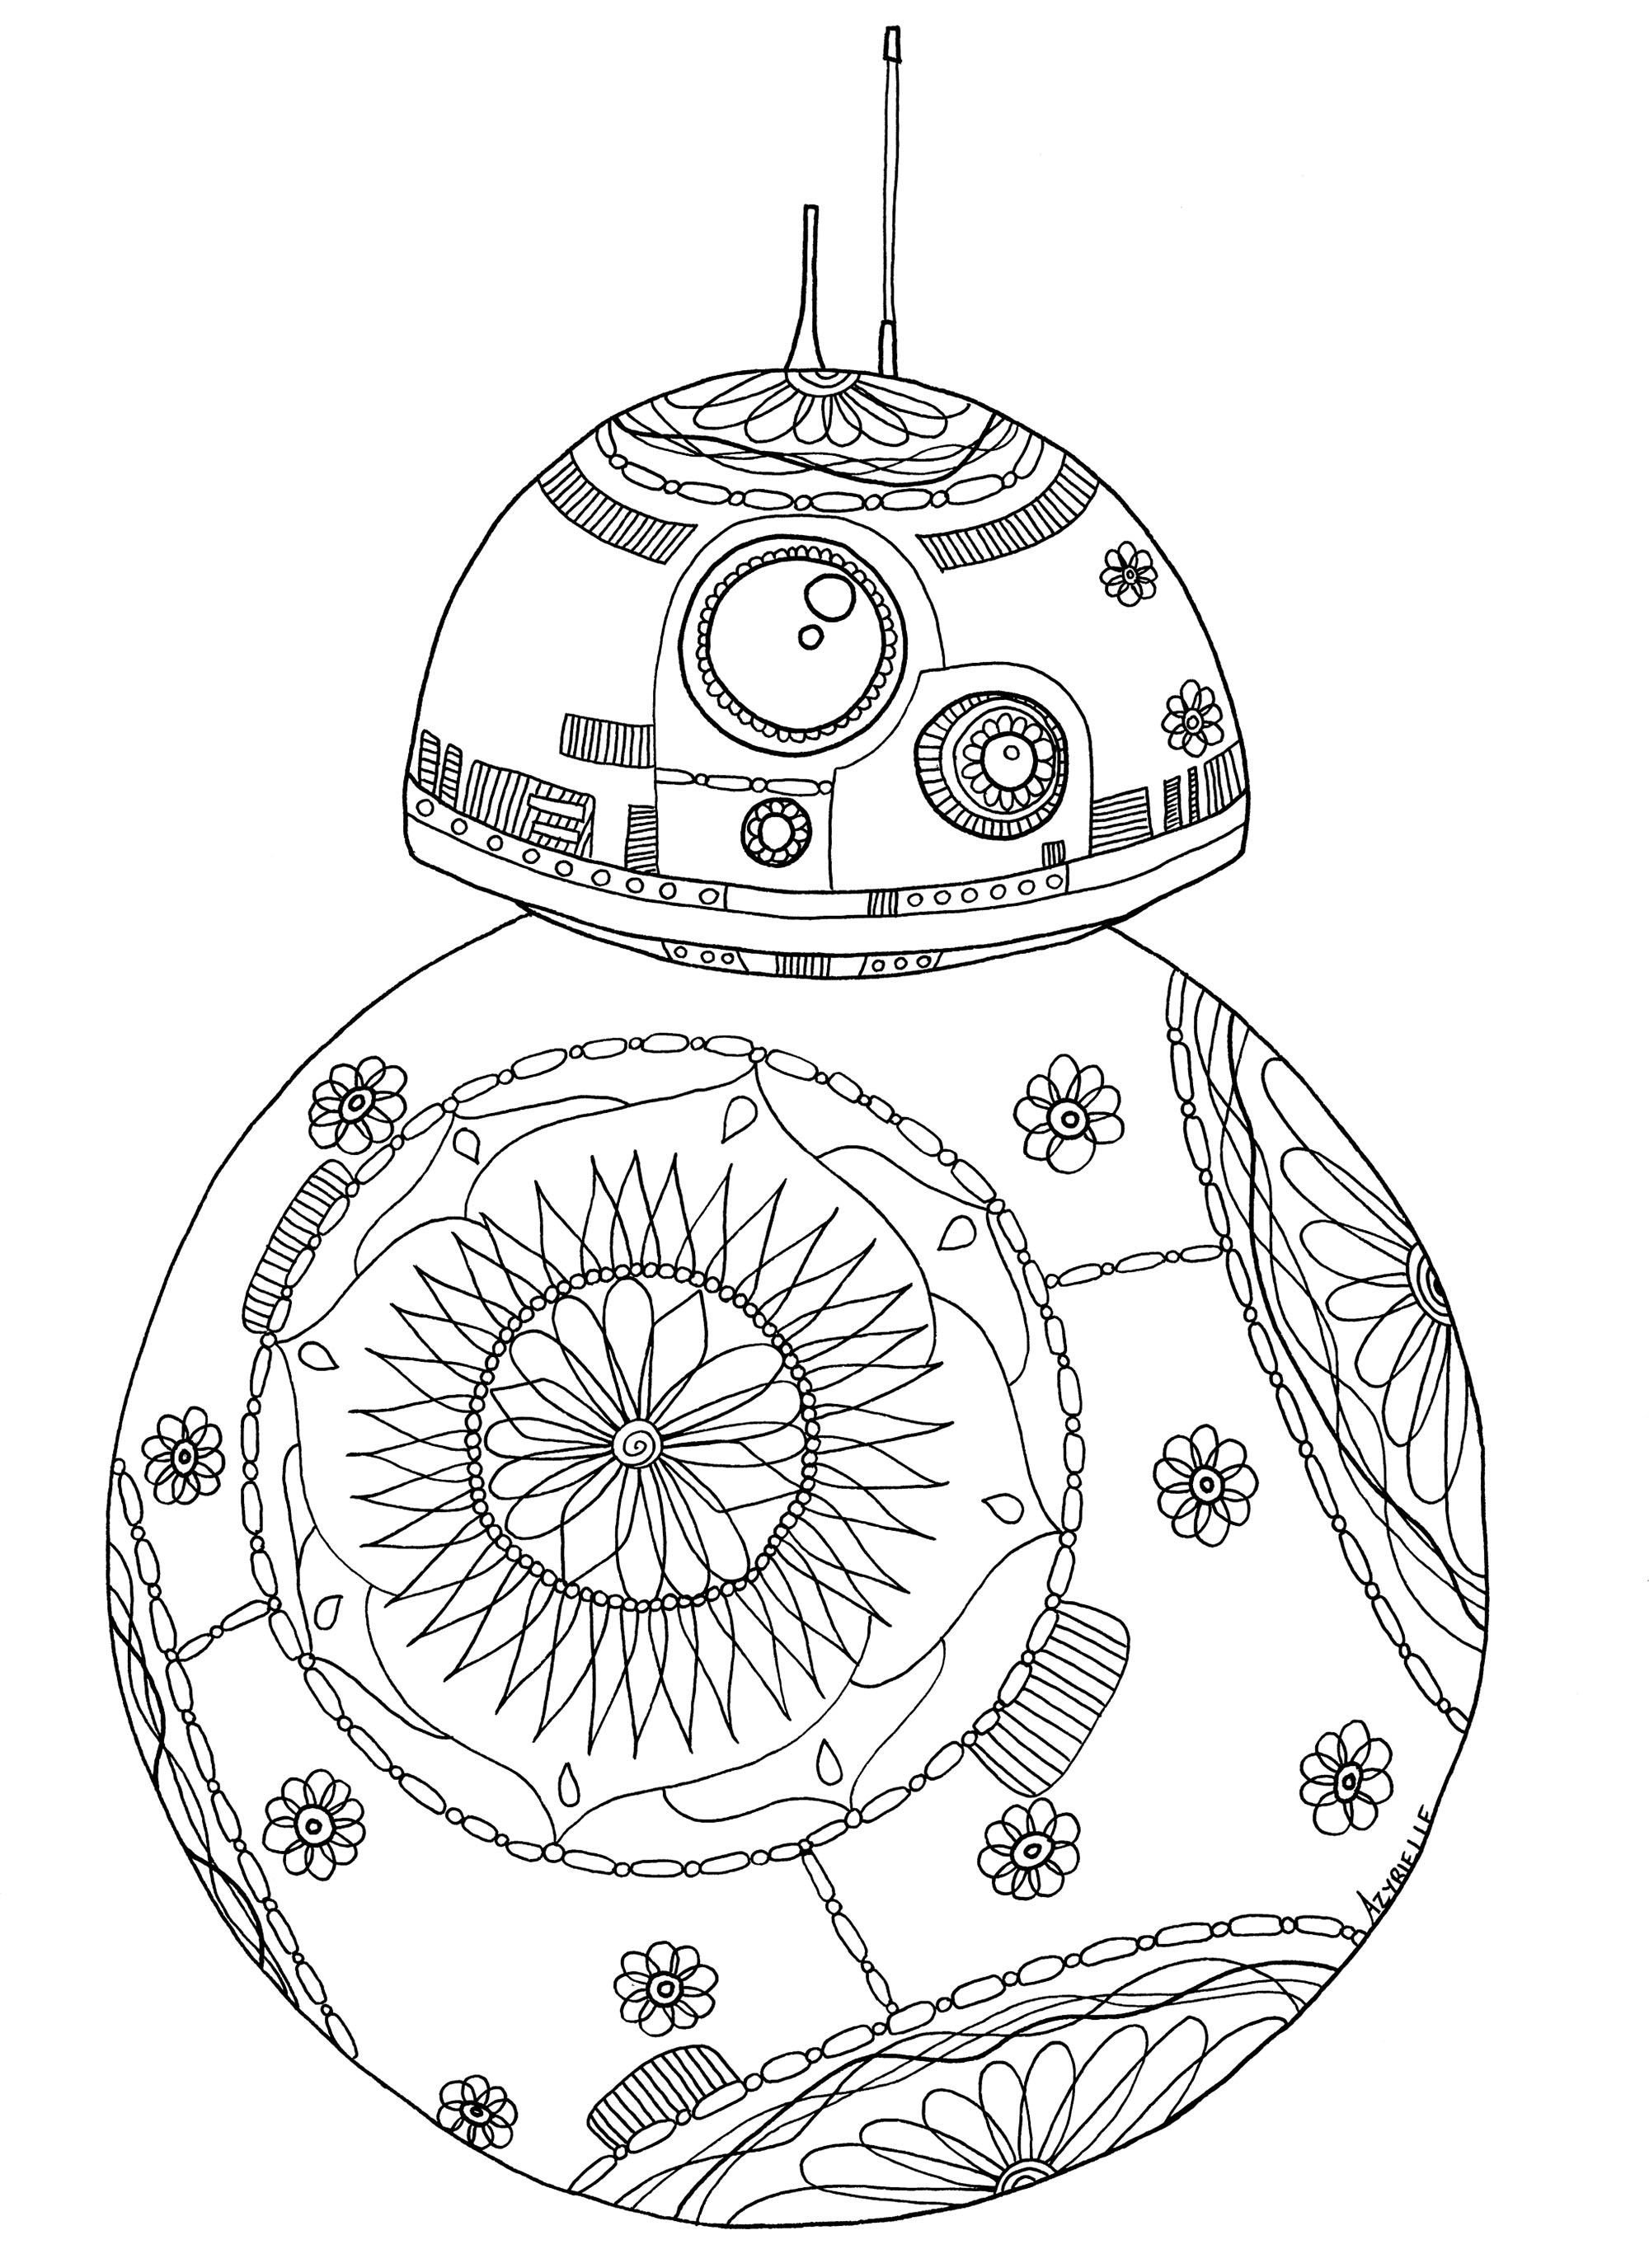 Starwars Coloring Pages Star Wars Coloring Pages For Adults